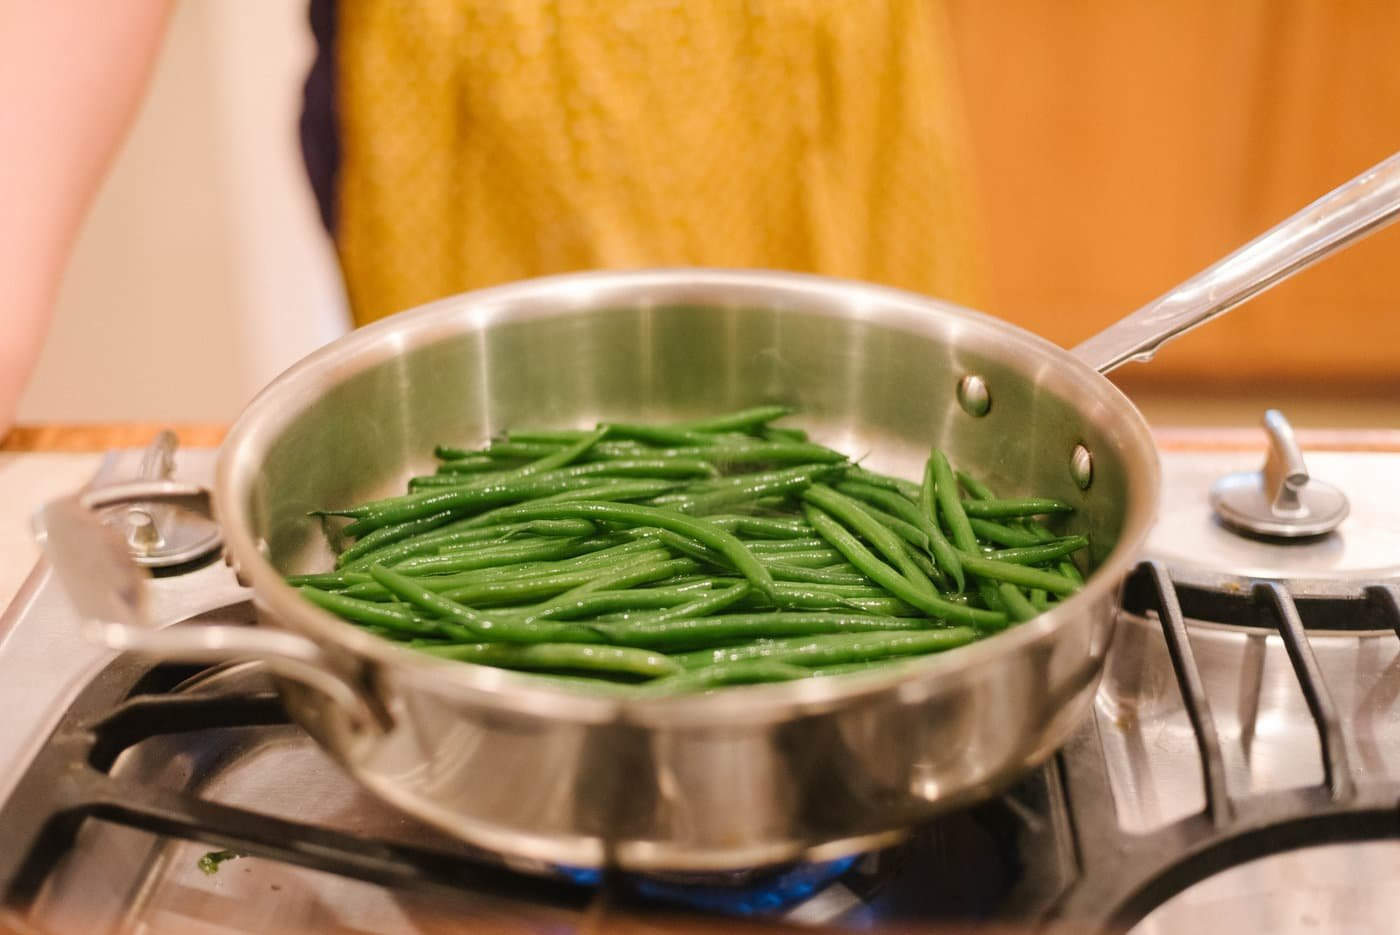 A saute pan of fresh haricots verts being cooked.